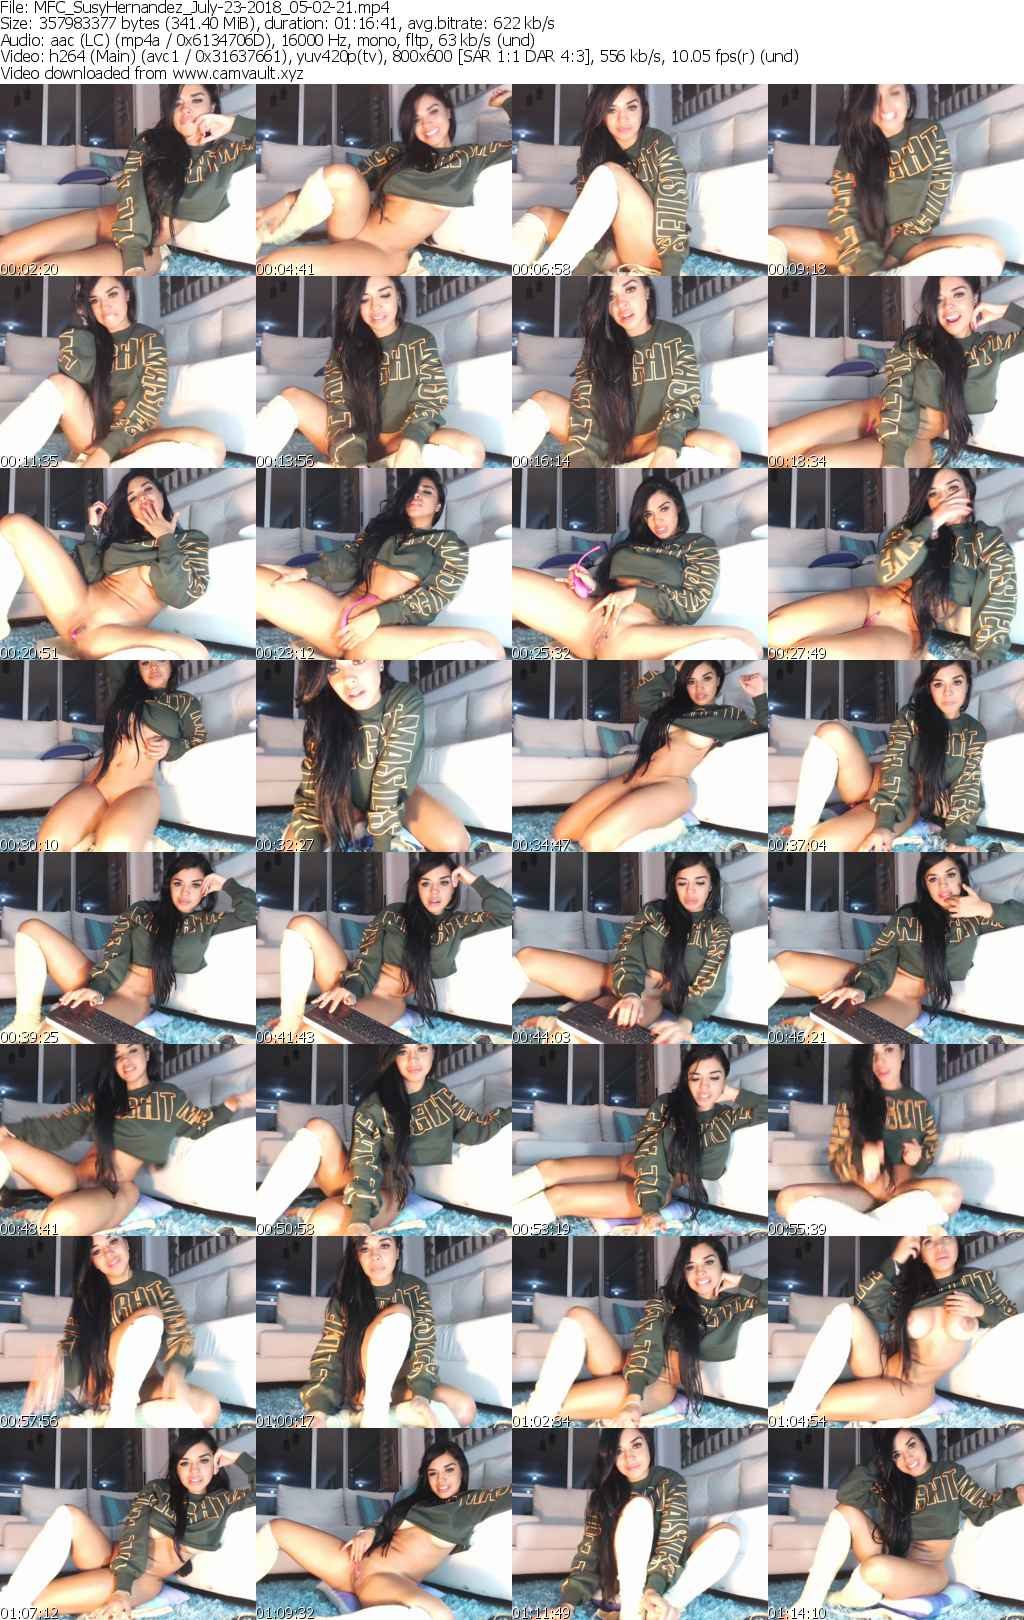 Video preview for model SusyHernandez